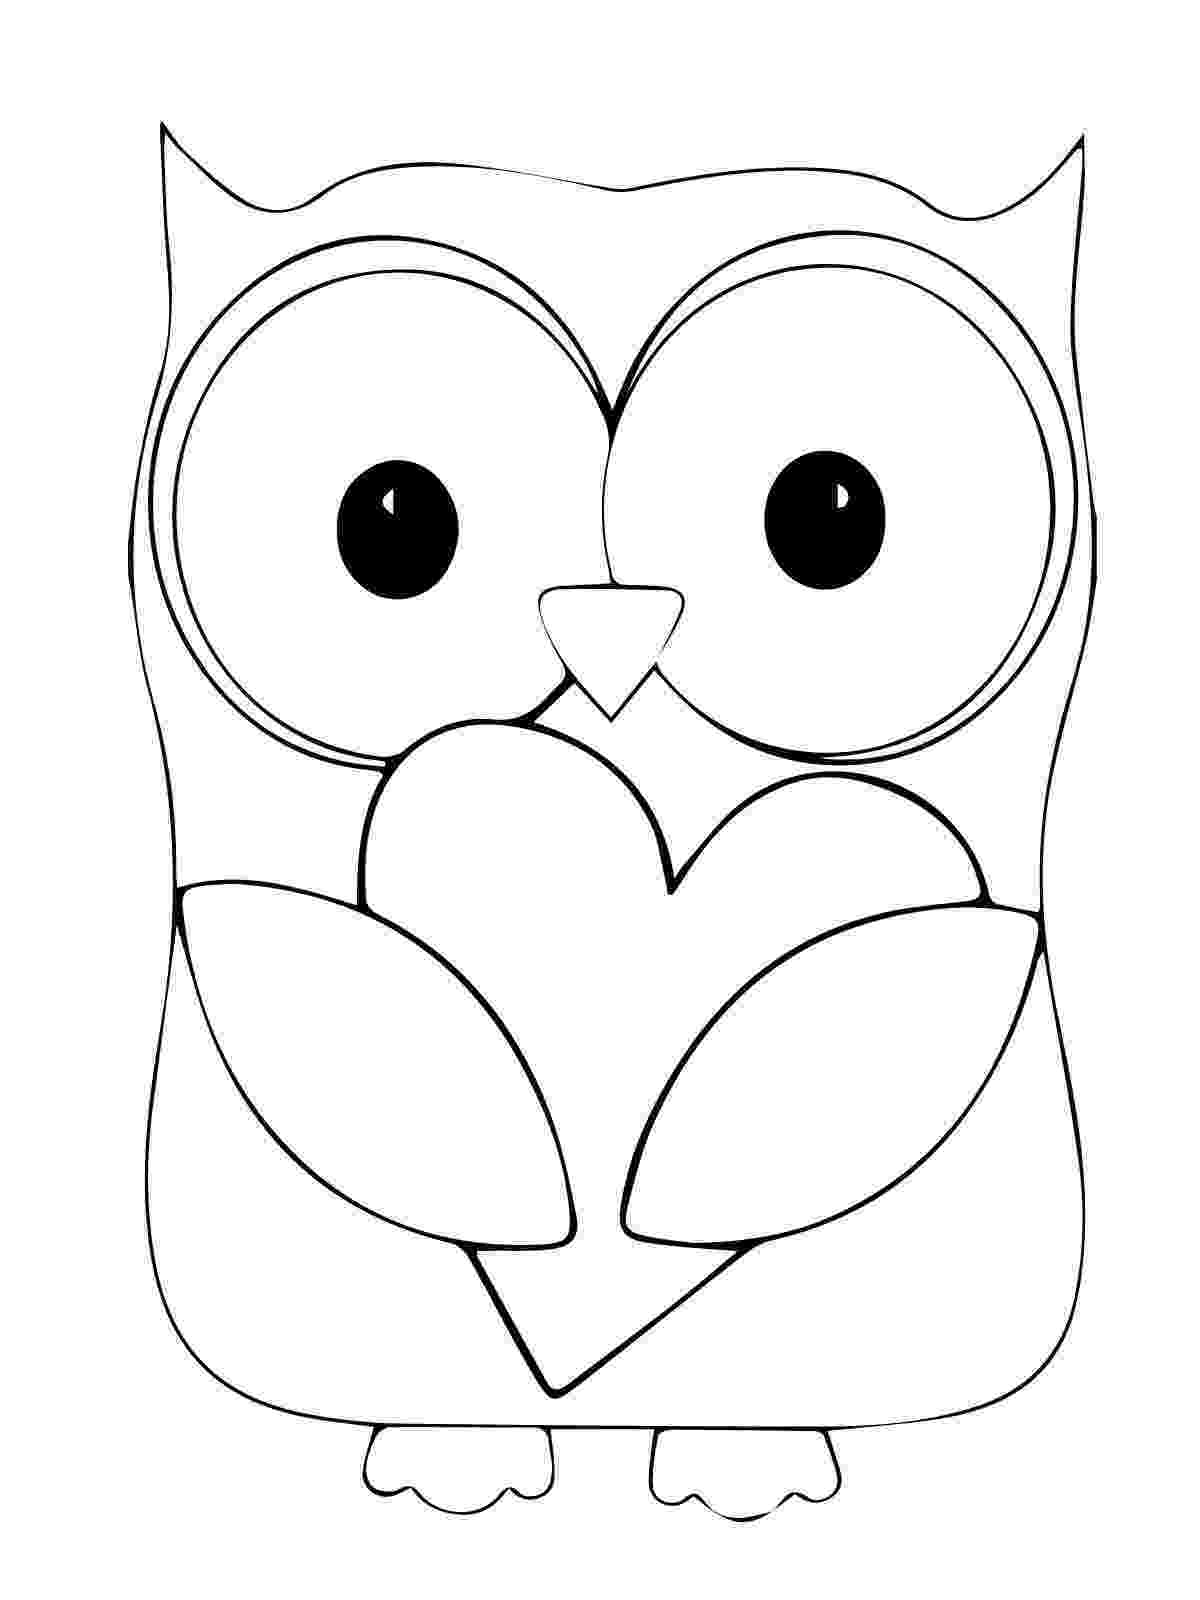 printable owl images owl coloring pages for adults free detailed owl coloring printable images owl